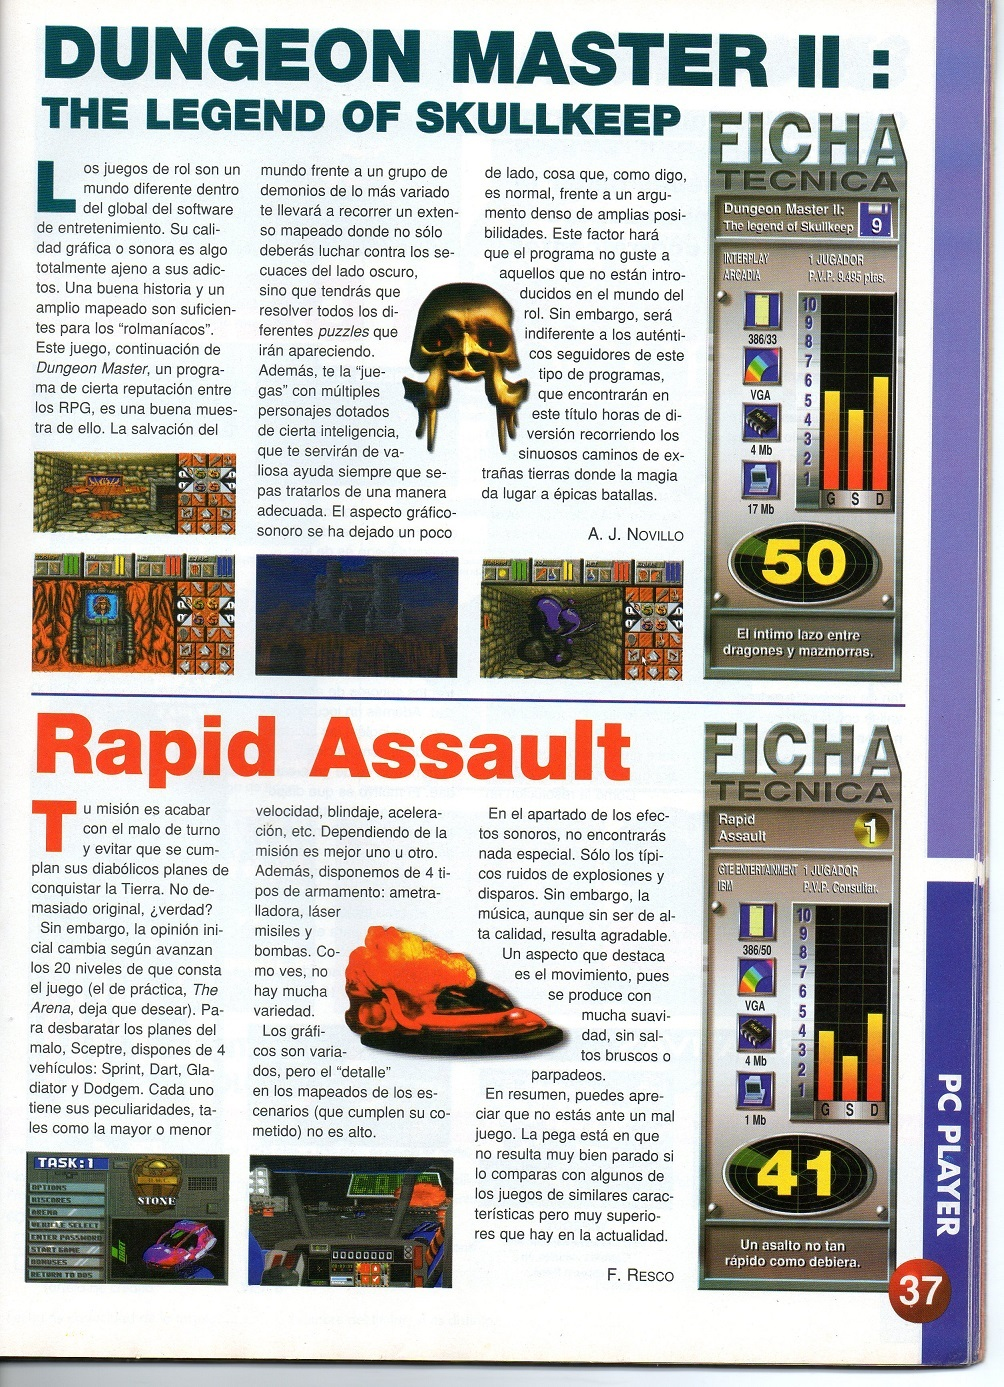 Dungeon Master II for PC Review published in Spain magazine 'PC Top Player', February 1996, Page 37